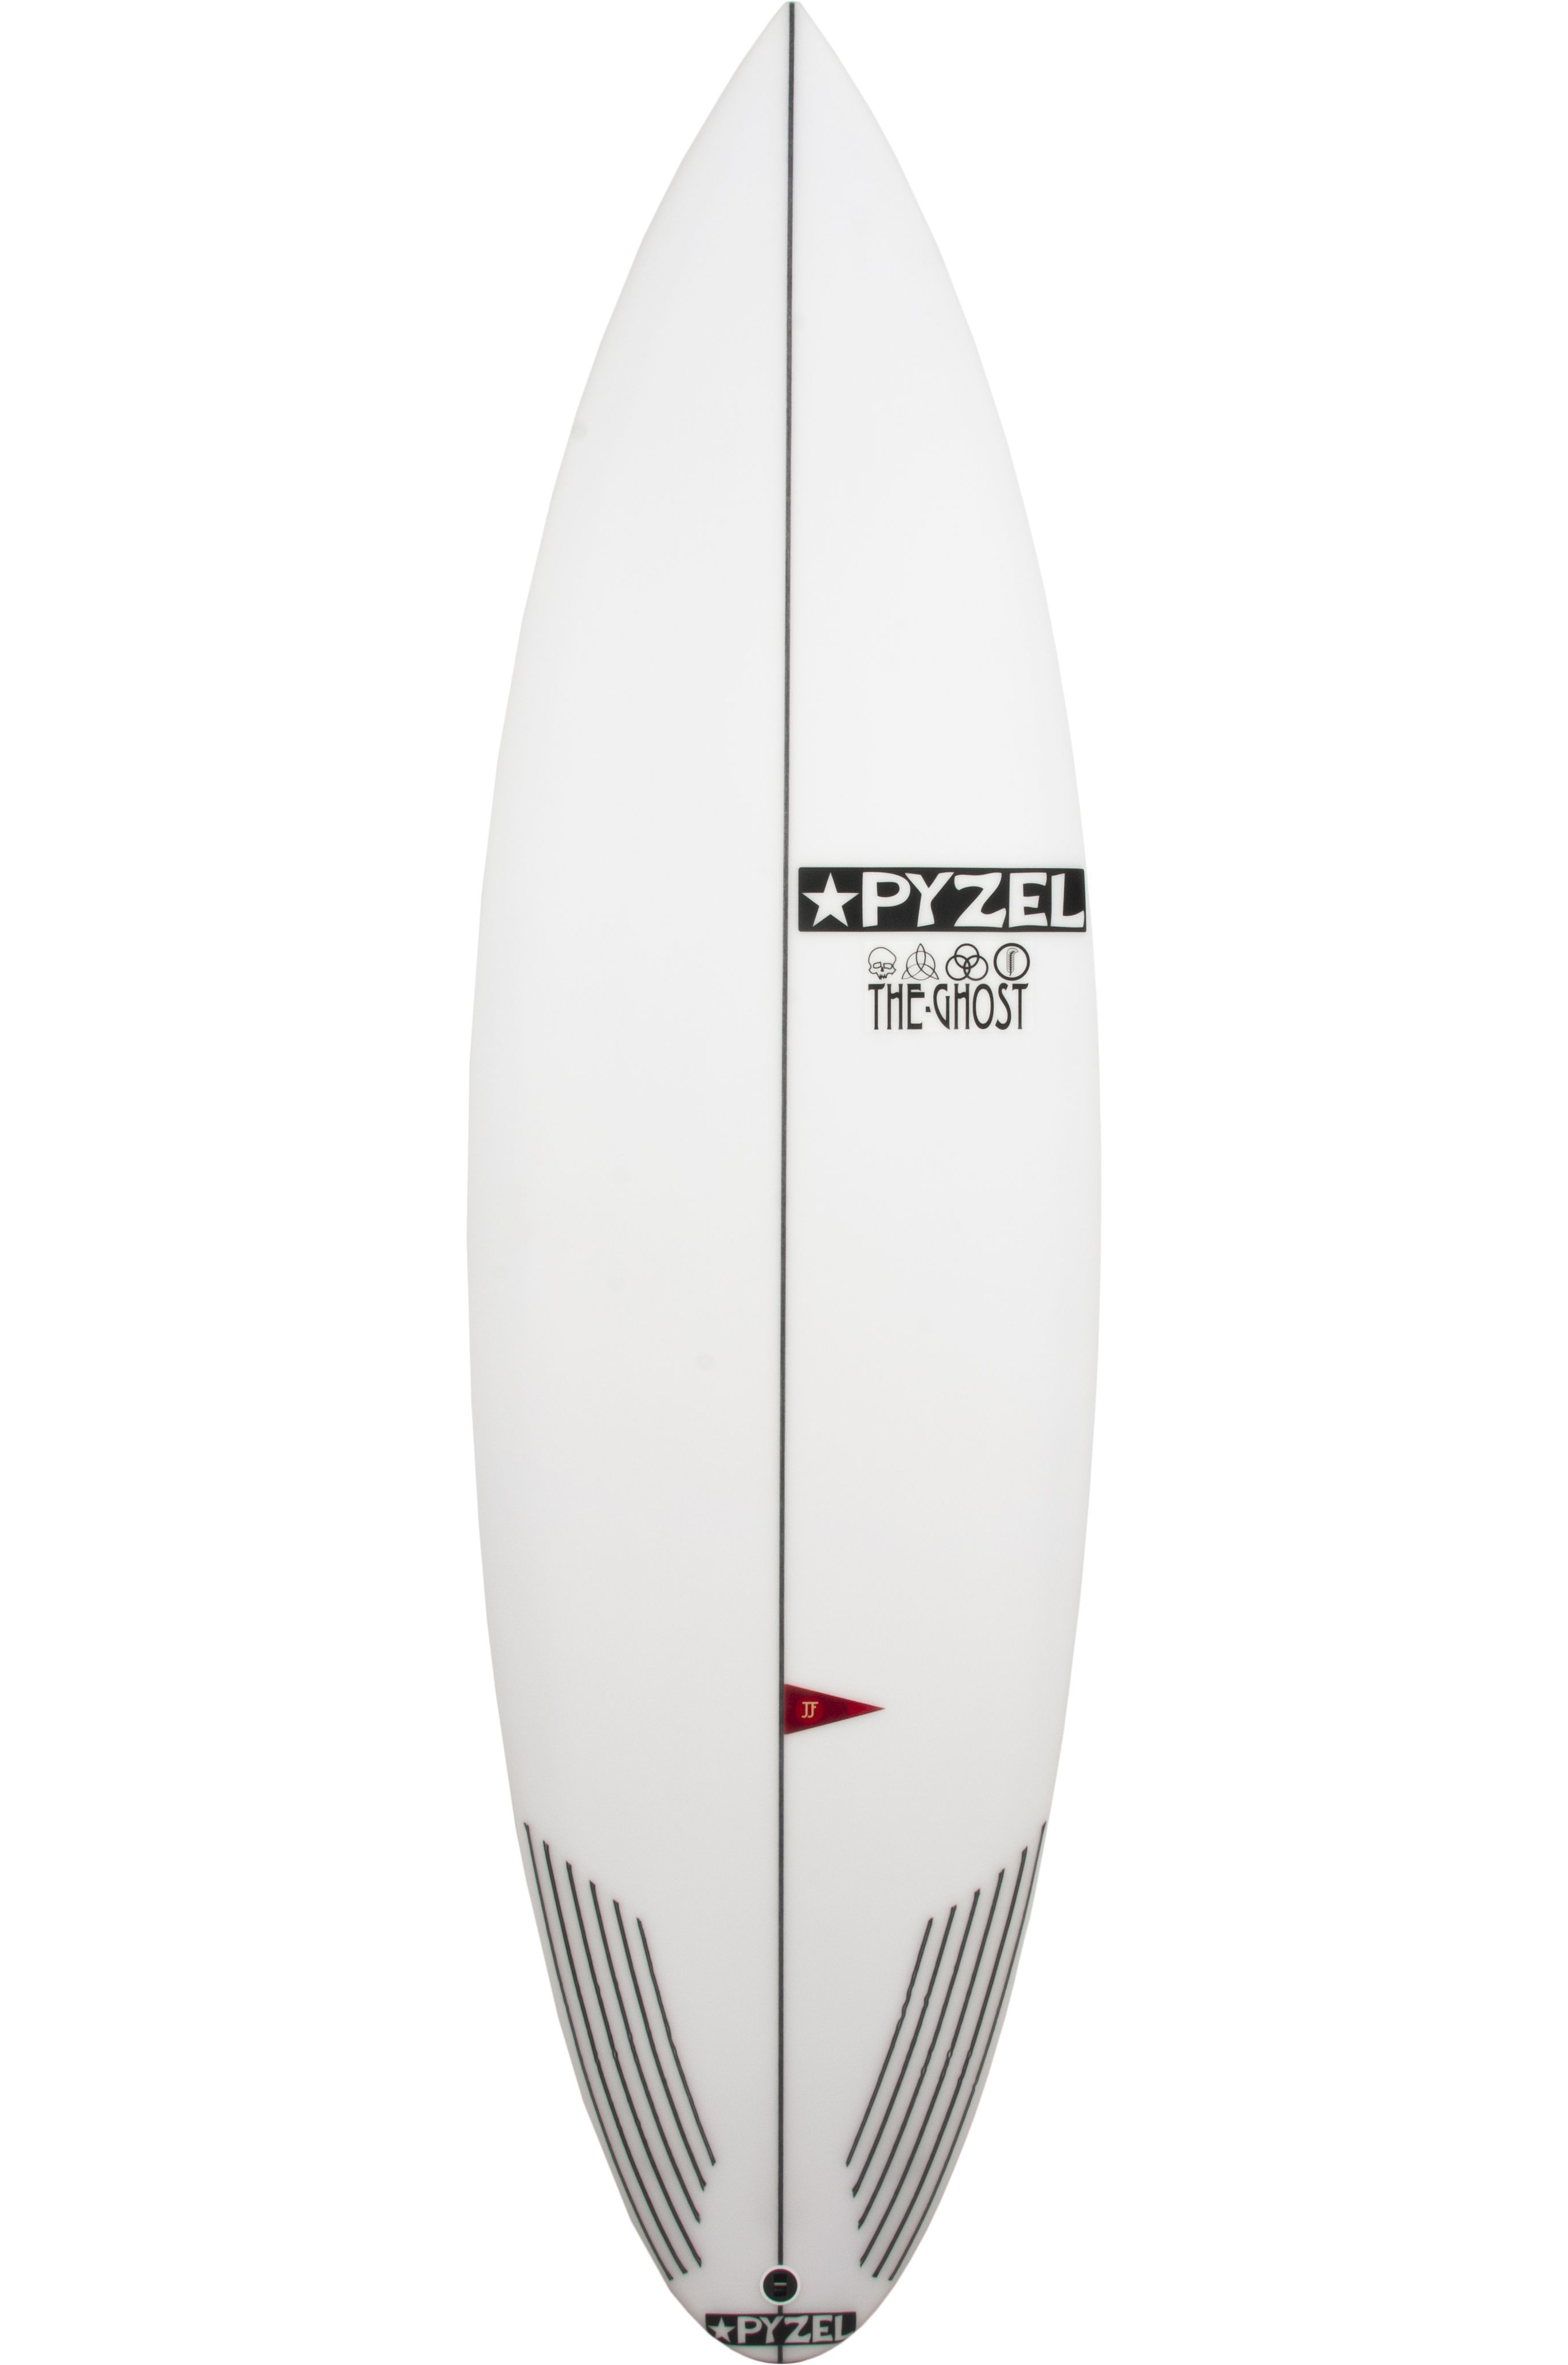 Pyzel Surf Board 5'6 GHOST Round Tail - White FCS II 5ft6